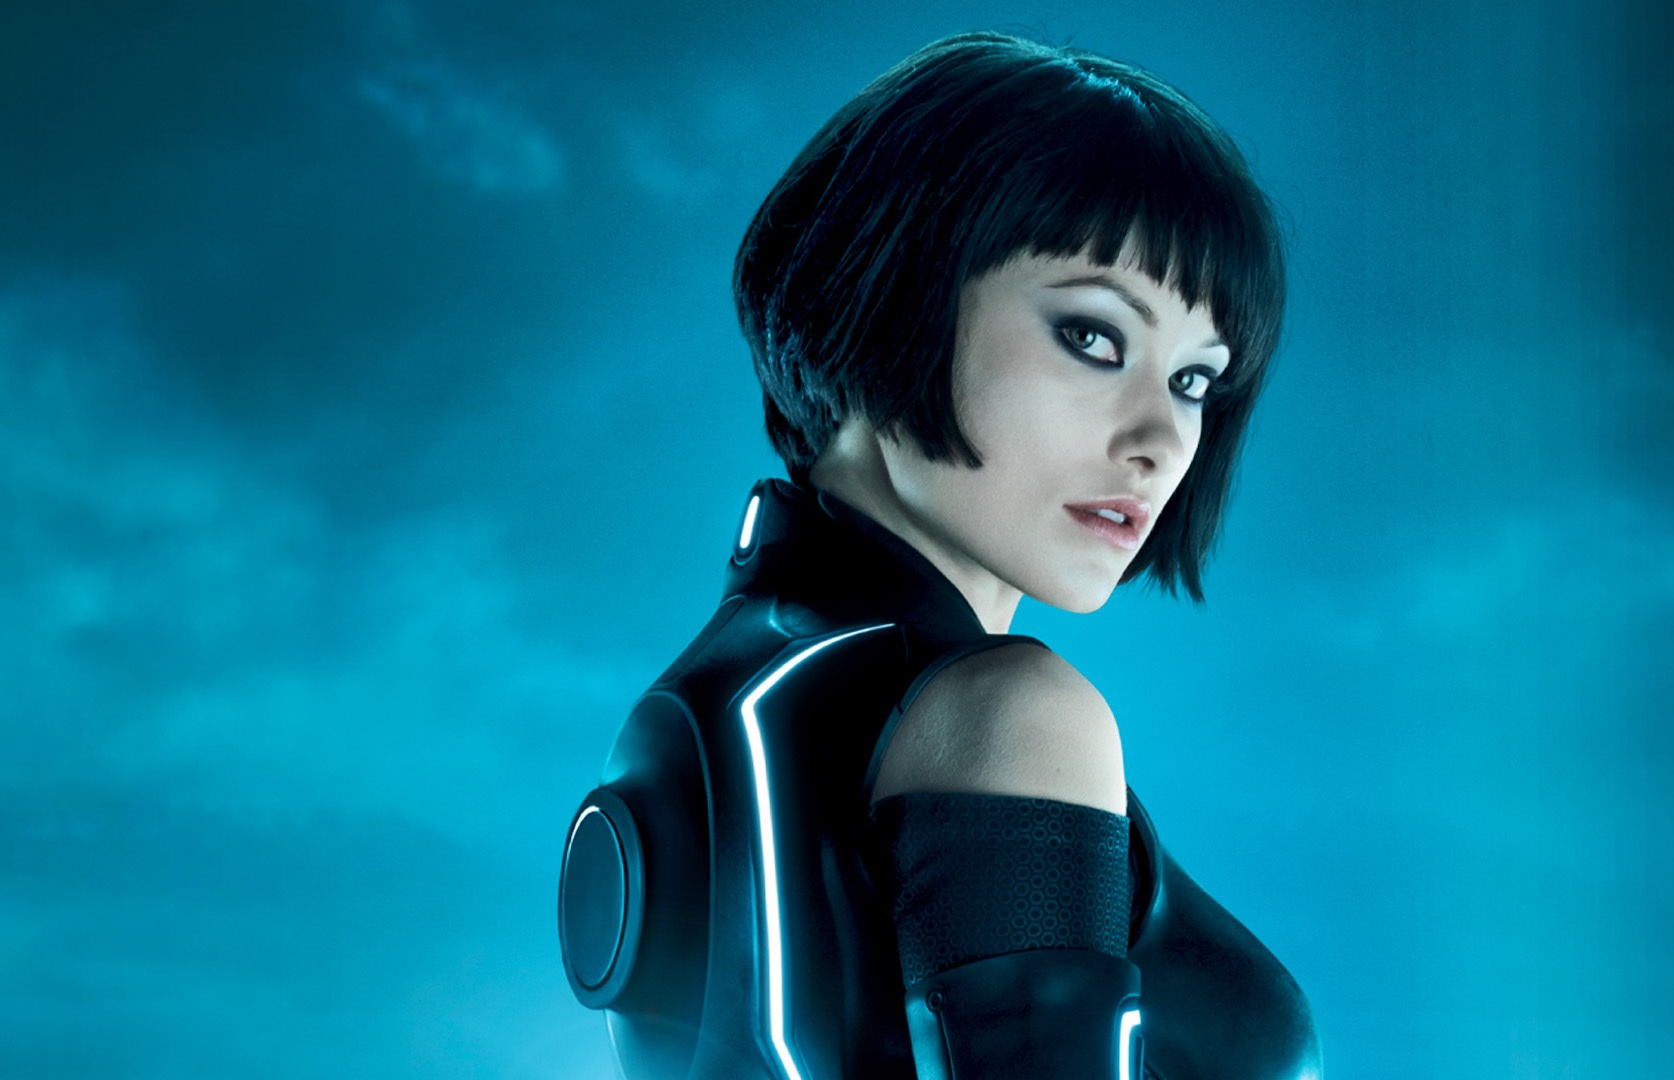 Olivia wilde tron black dress wallpapers